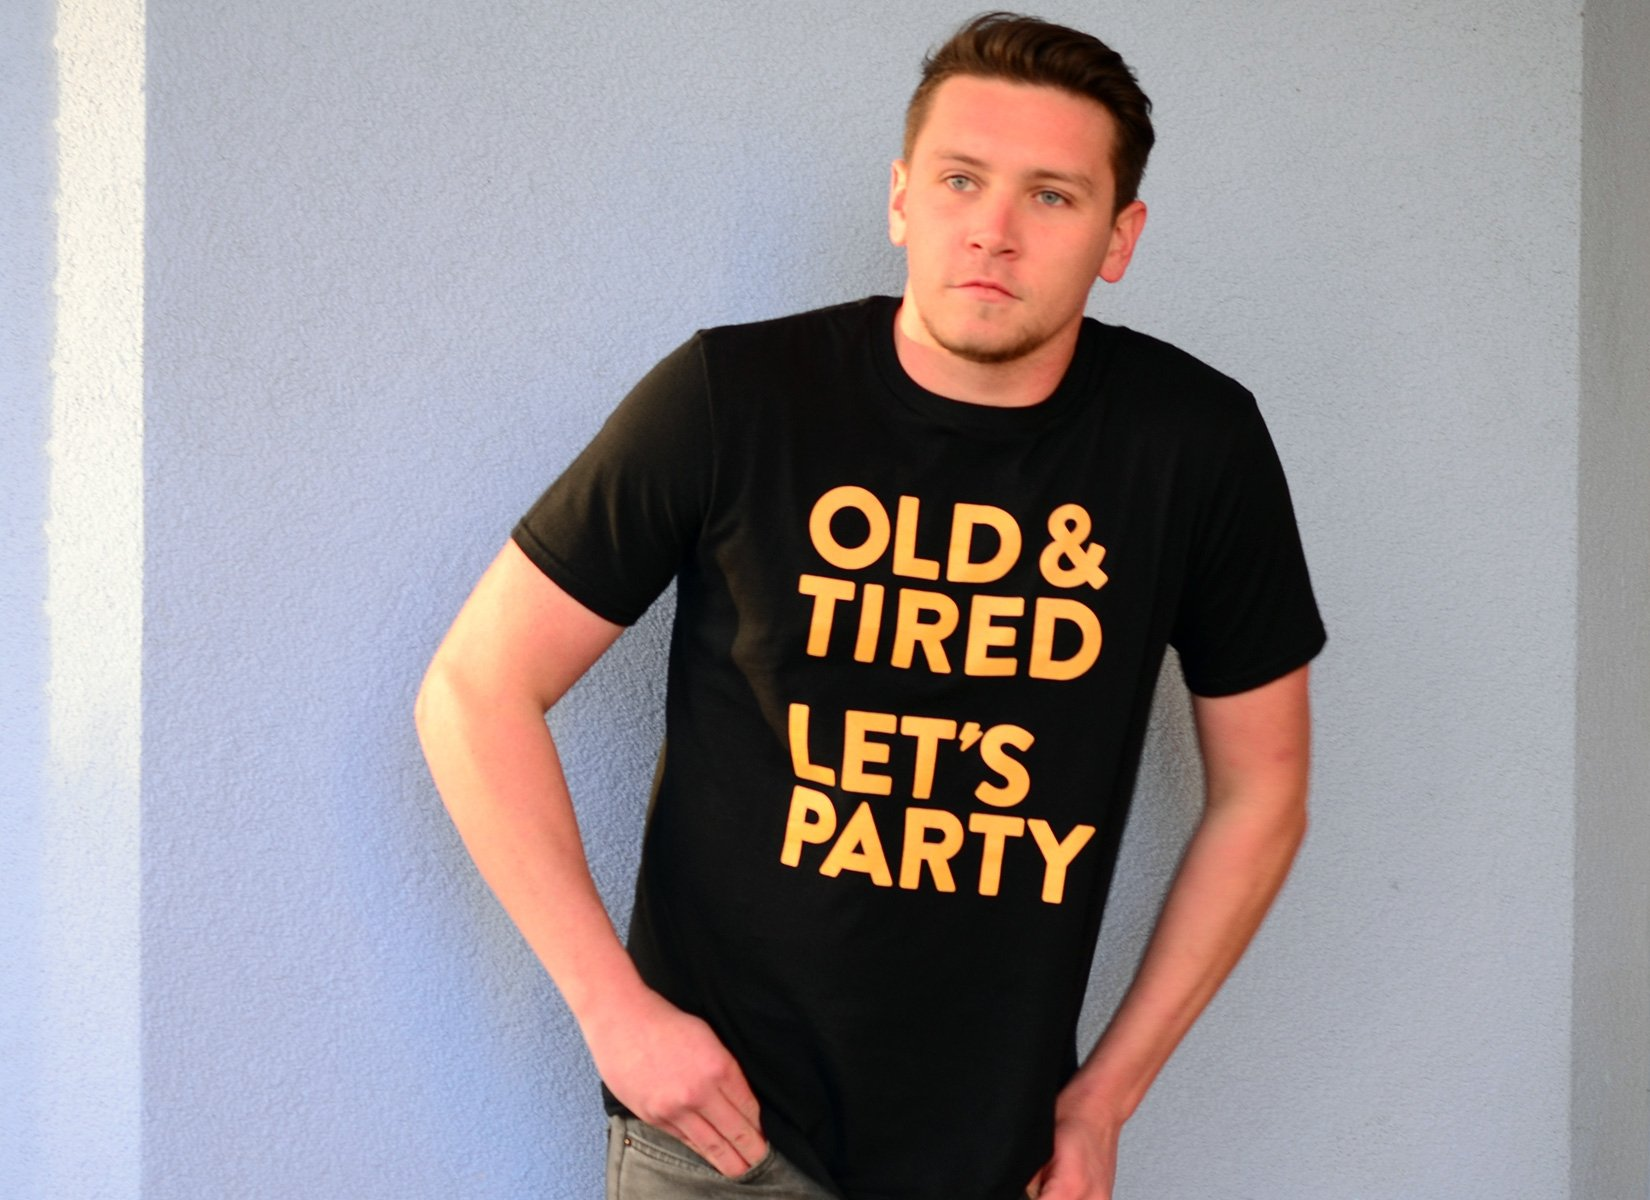 Old & Tired Let's Party on Mens T-Shirt